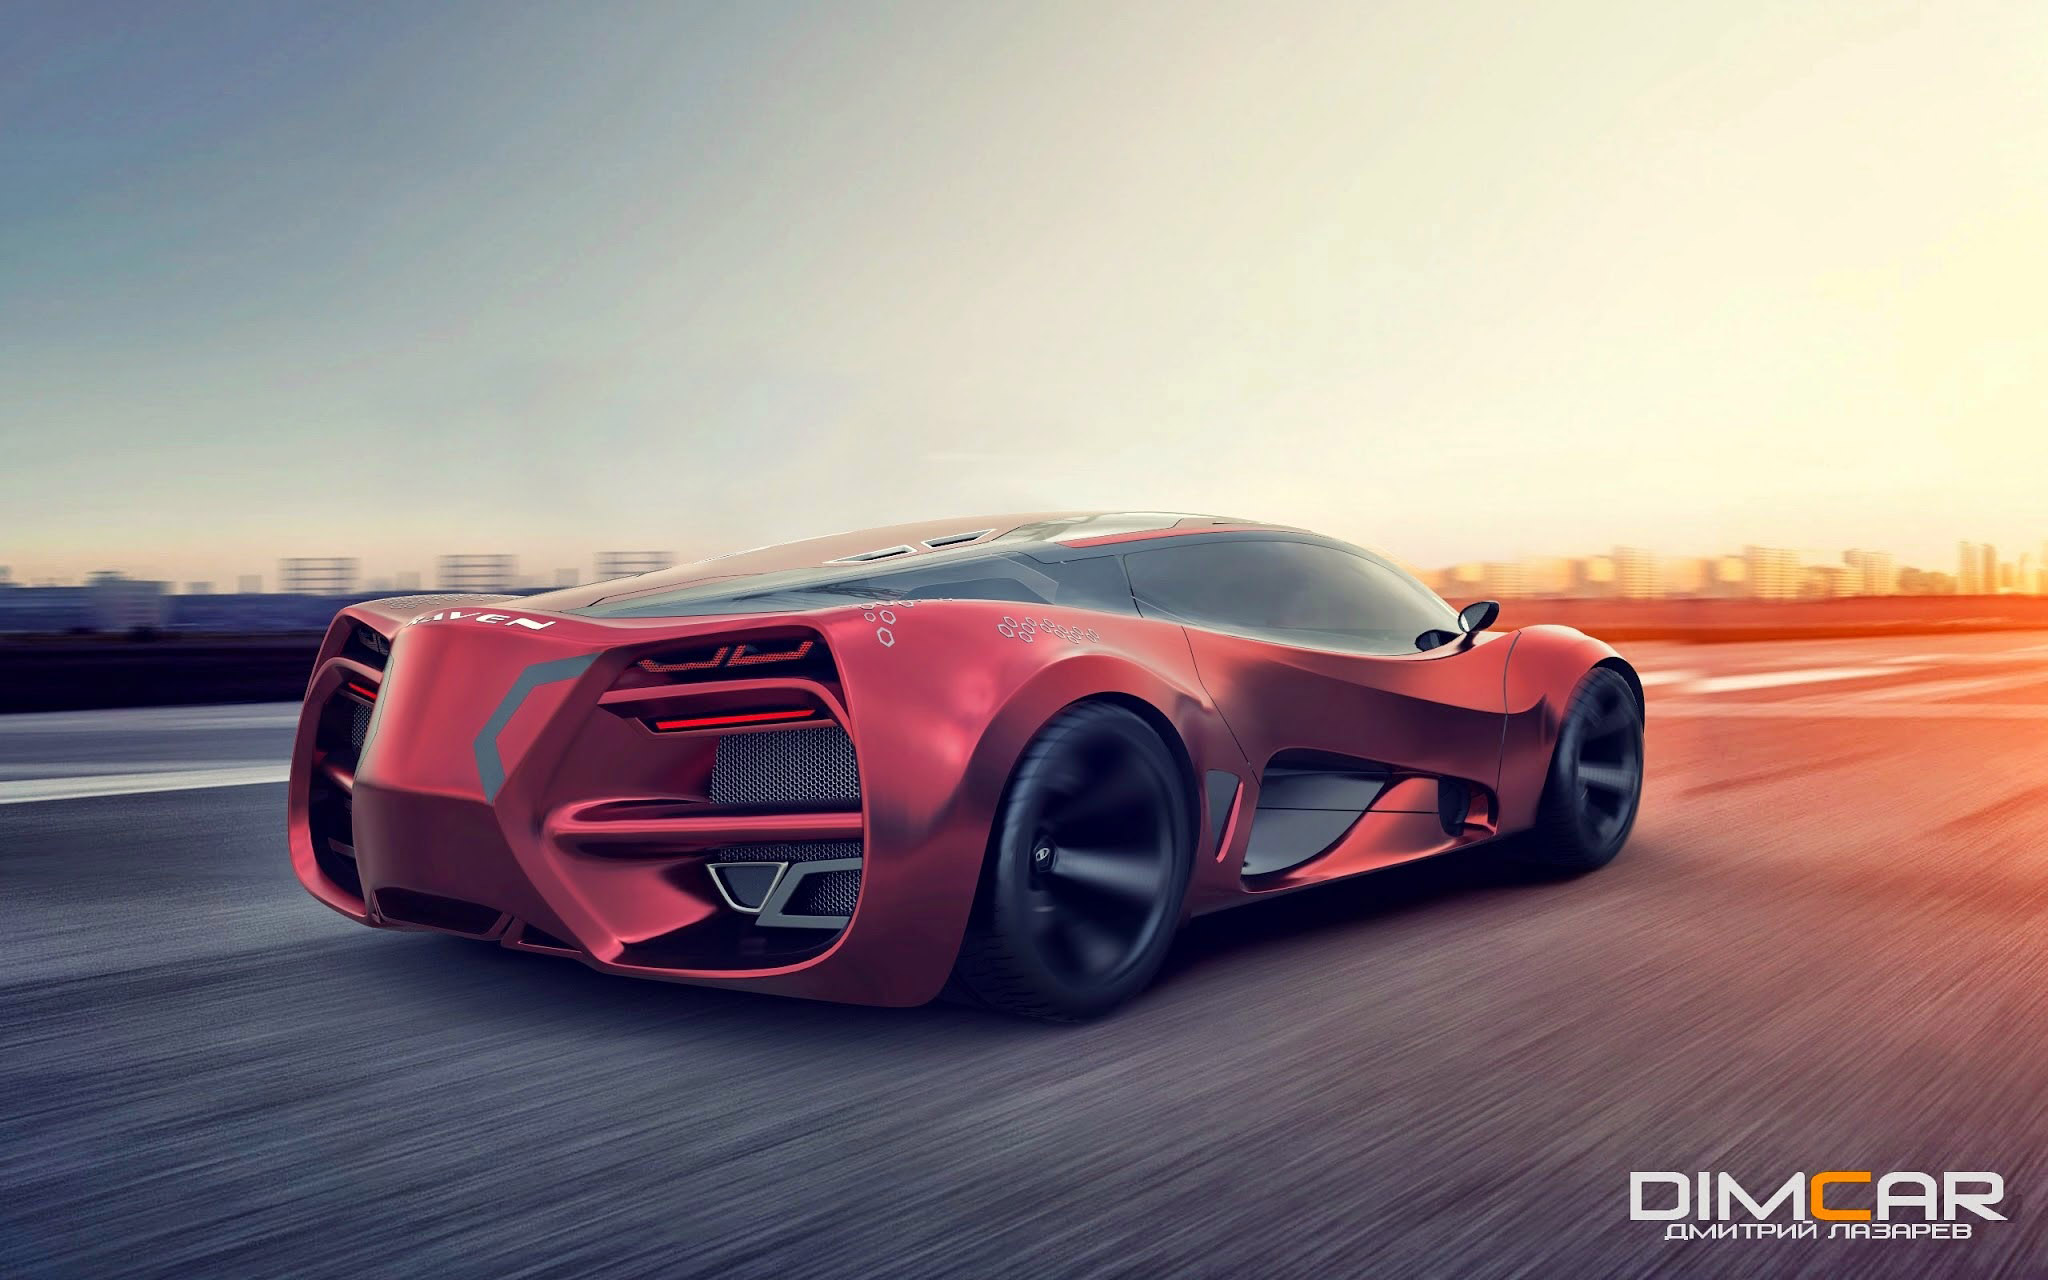 Cars Wallpapers: Lada Has In Mind A Supercar Concept? [VIDEO]